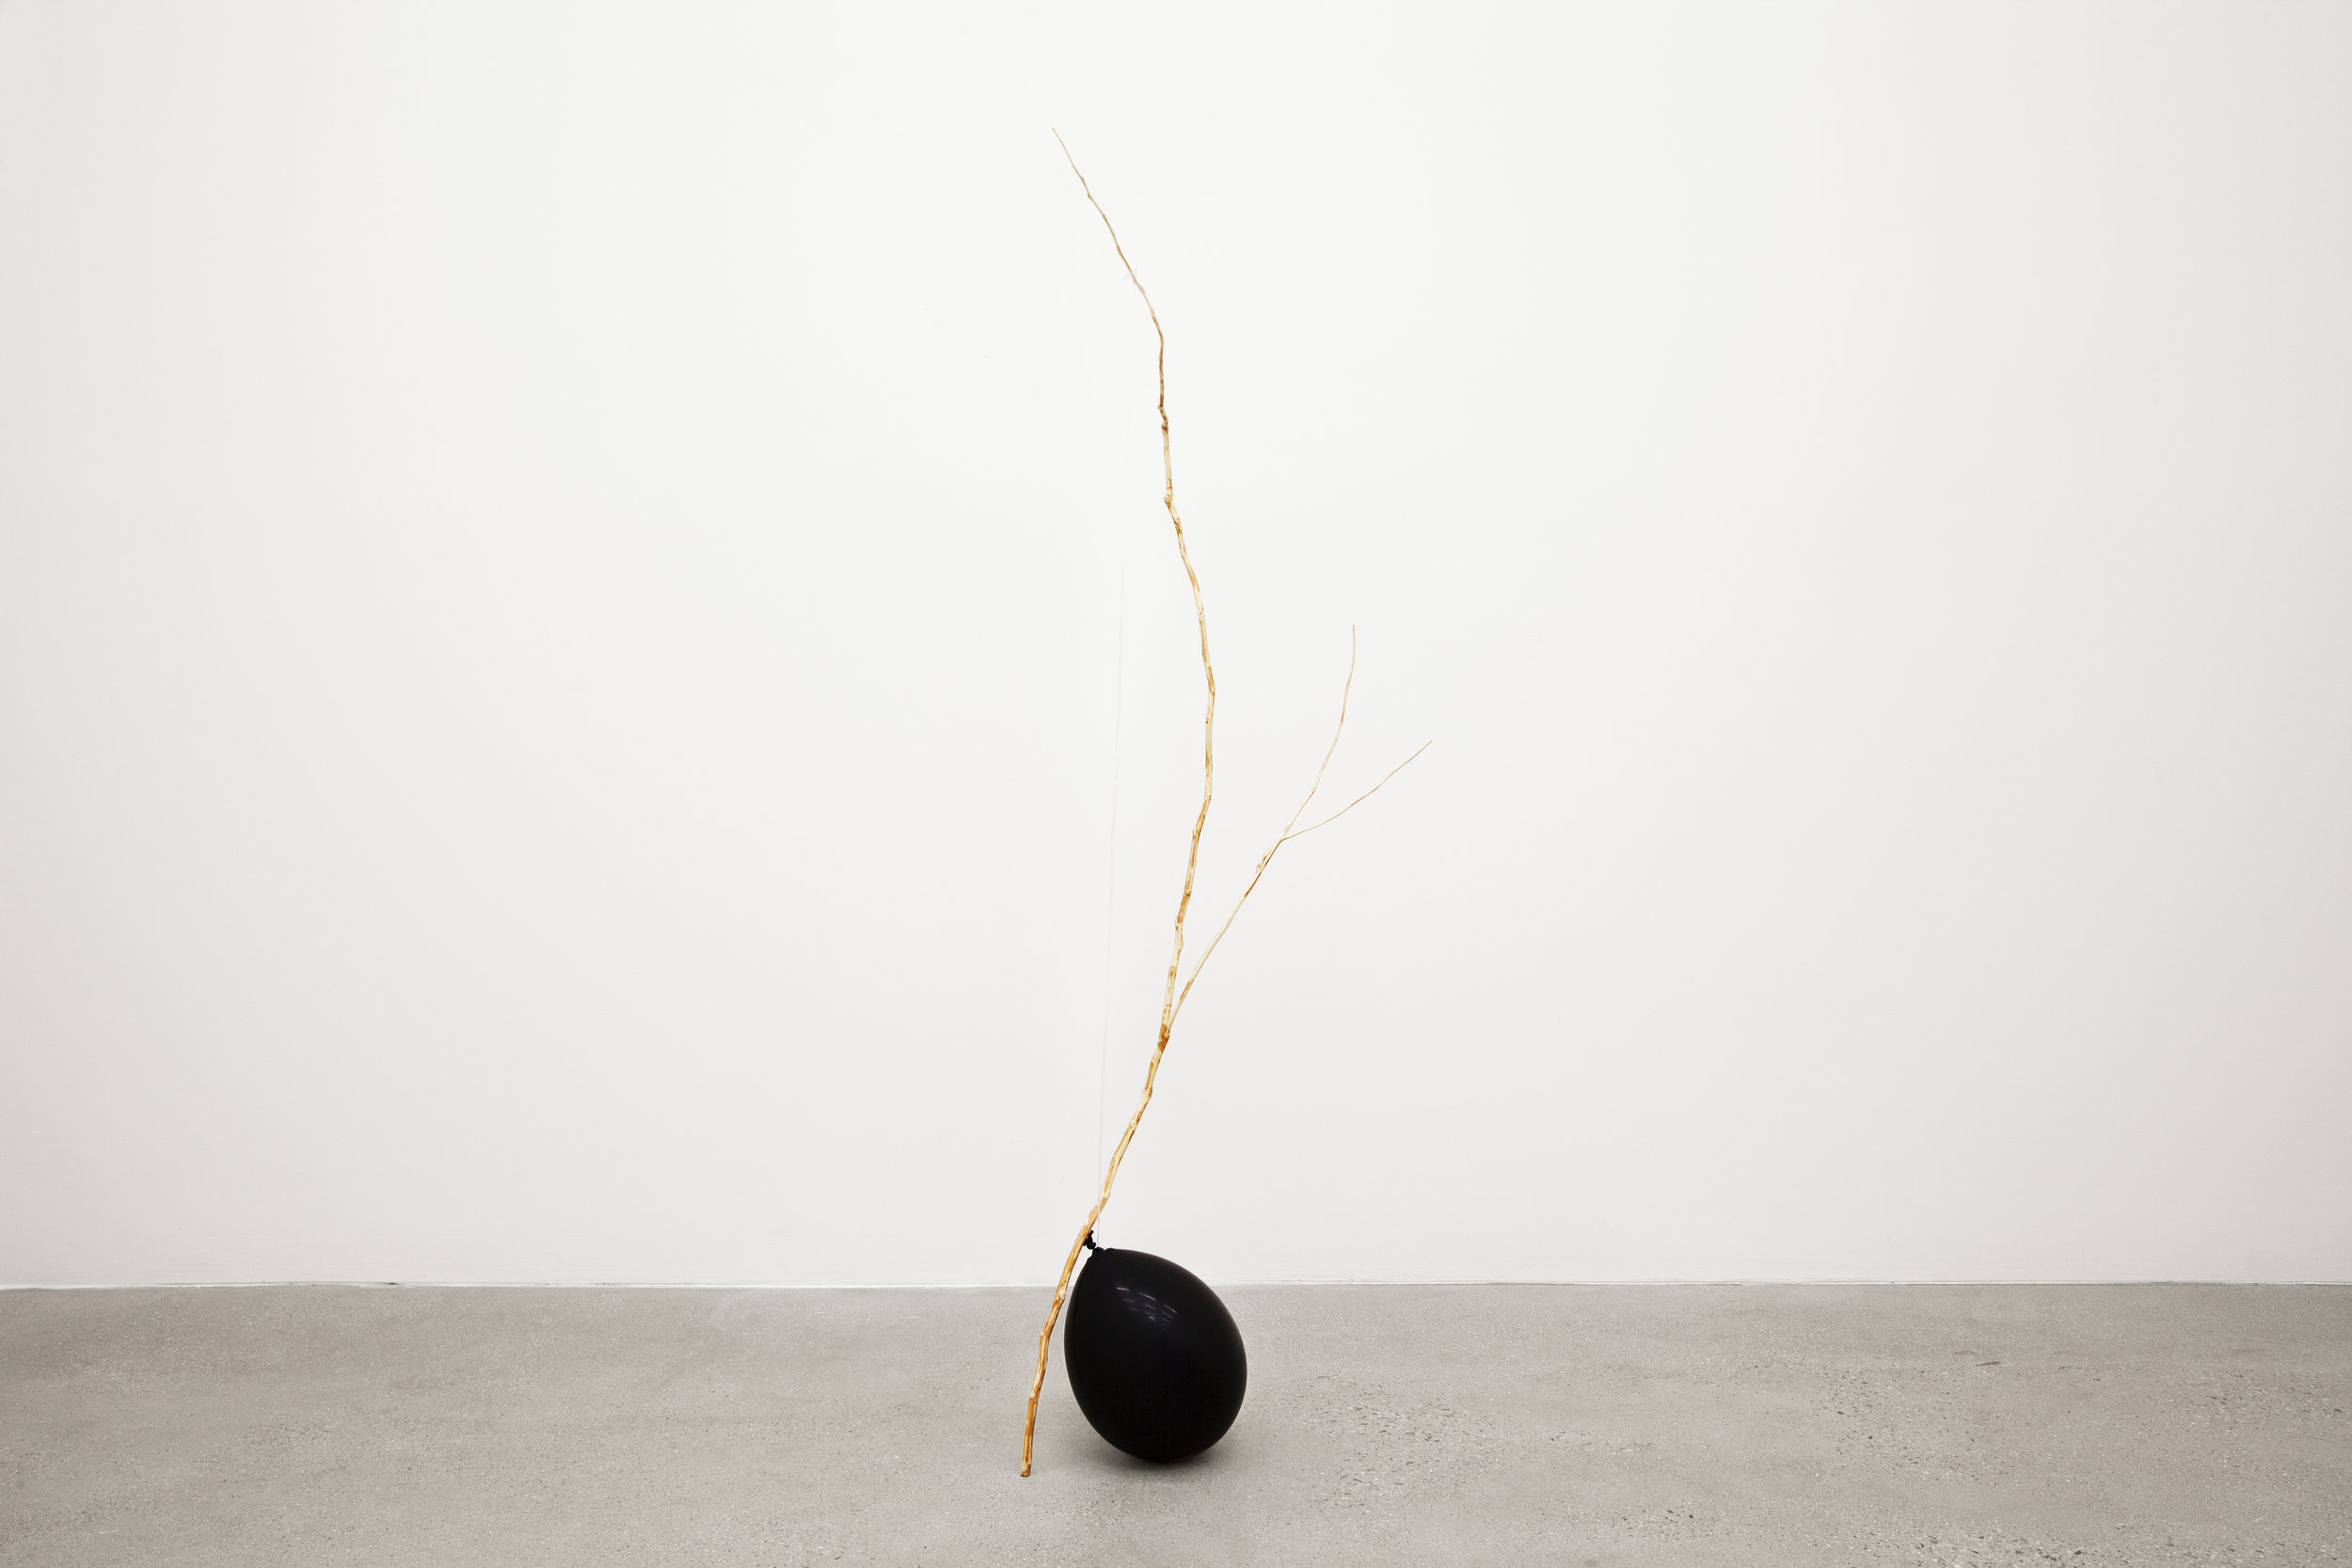 Poetry Gasping For Air , 2018, camphor tree branch, latex ballon, string, 53 x 1 in